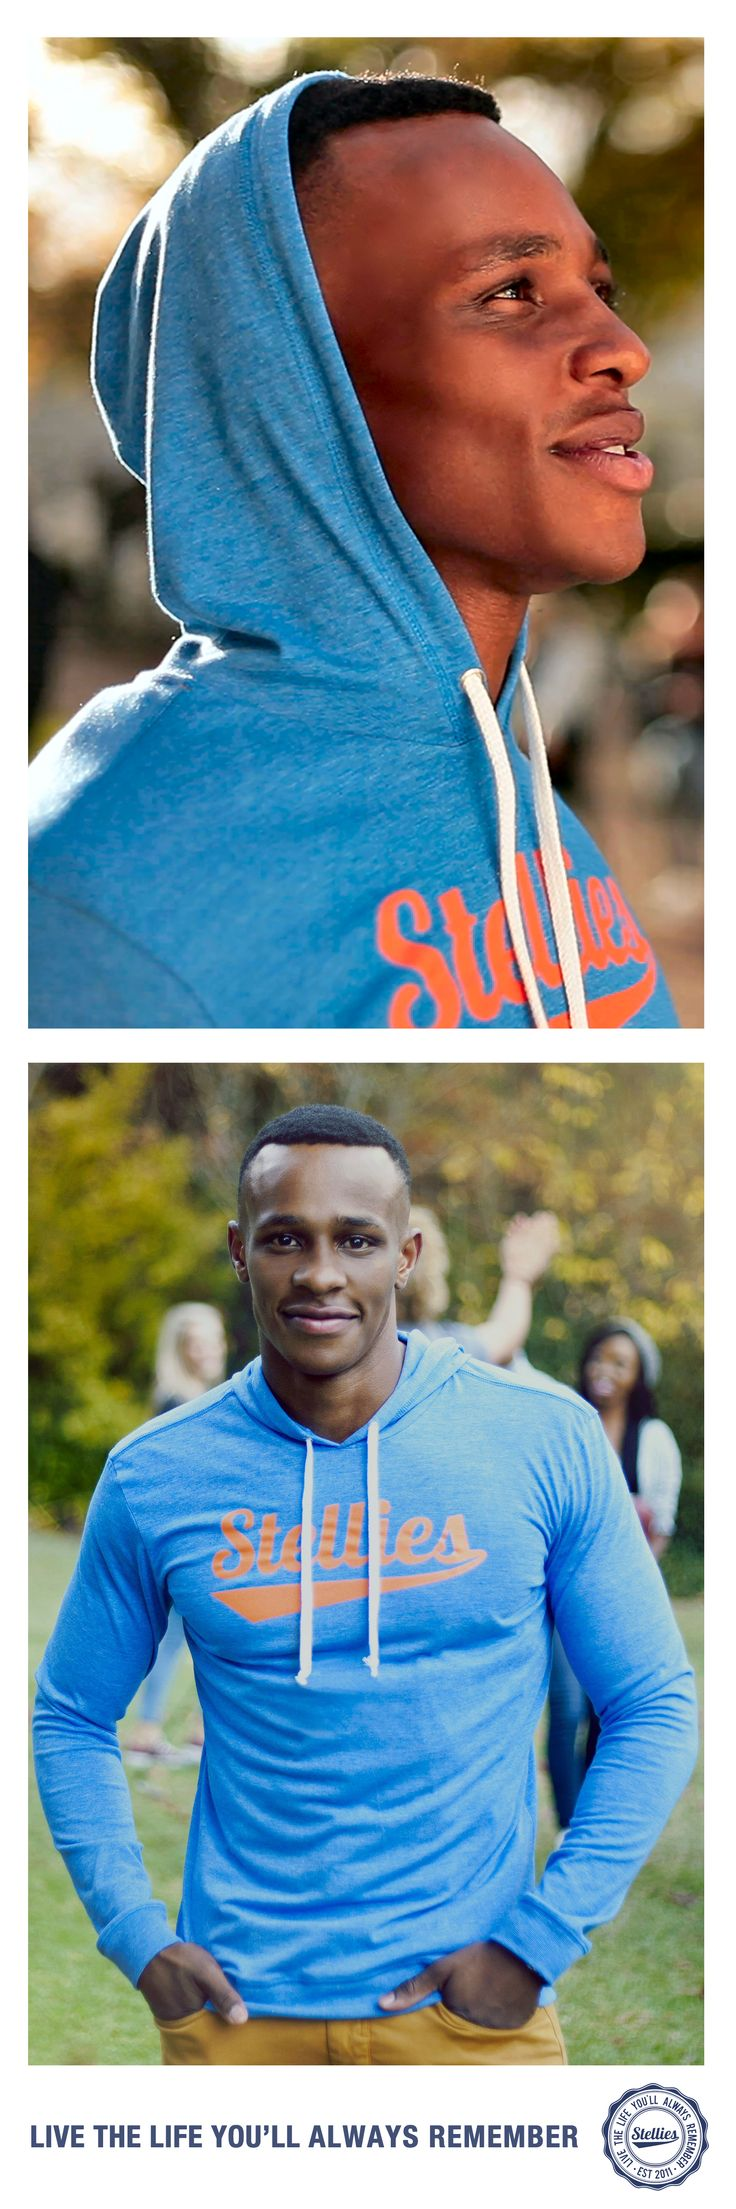 Petrol Blue Hoodie by Stellies™ Check us out at www.stelliesTM.co.za © Stellies 2014